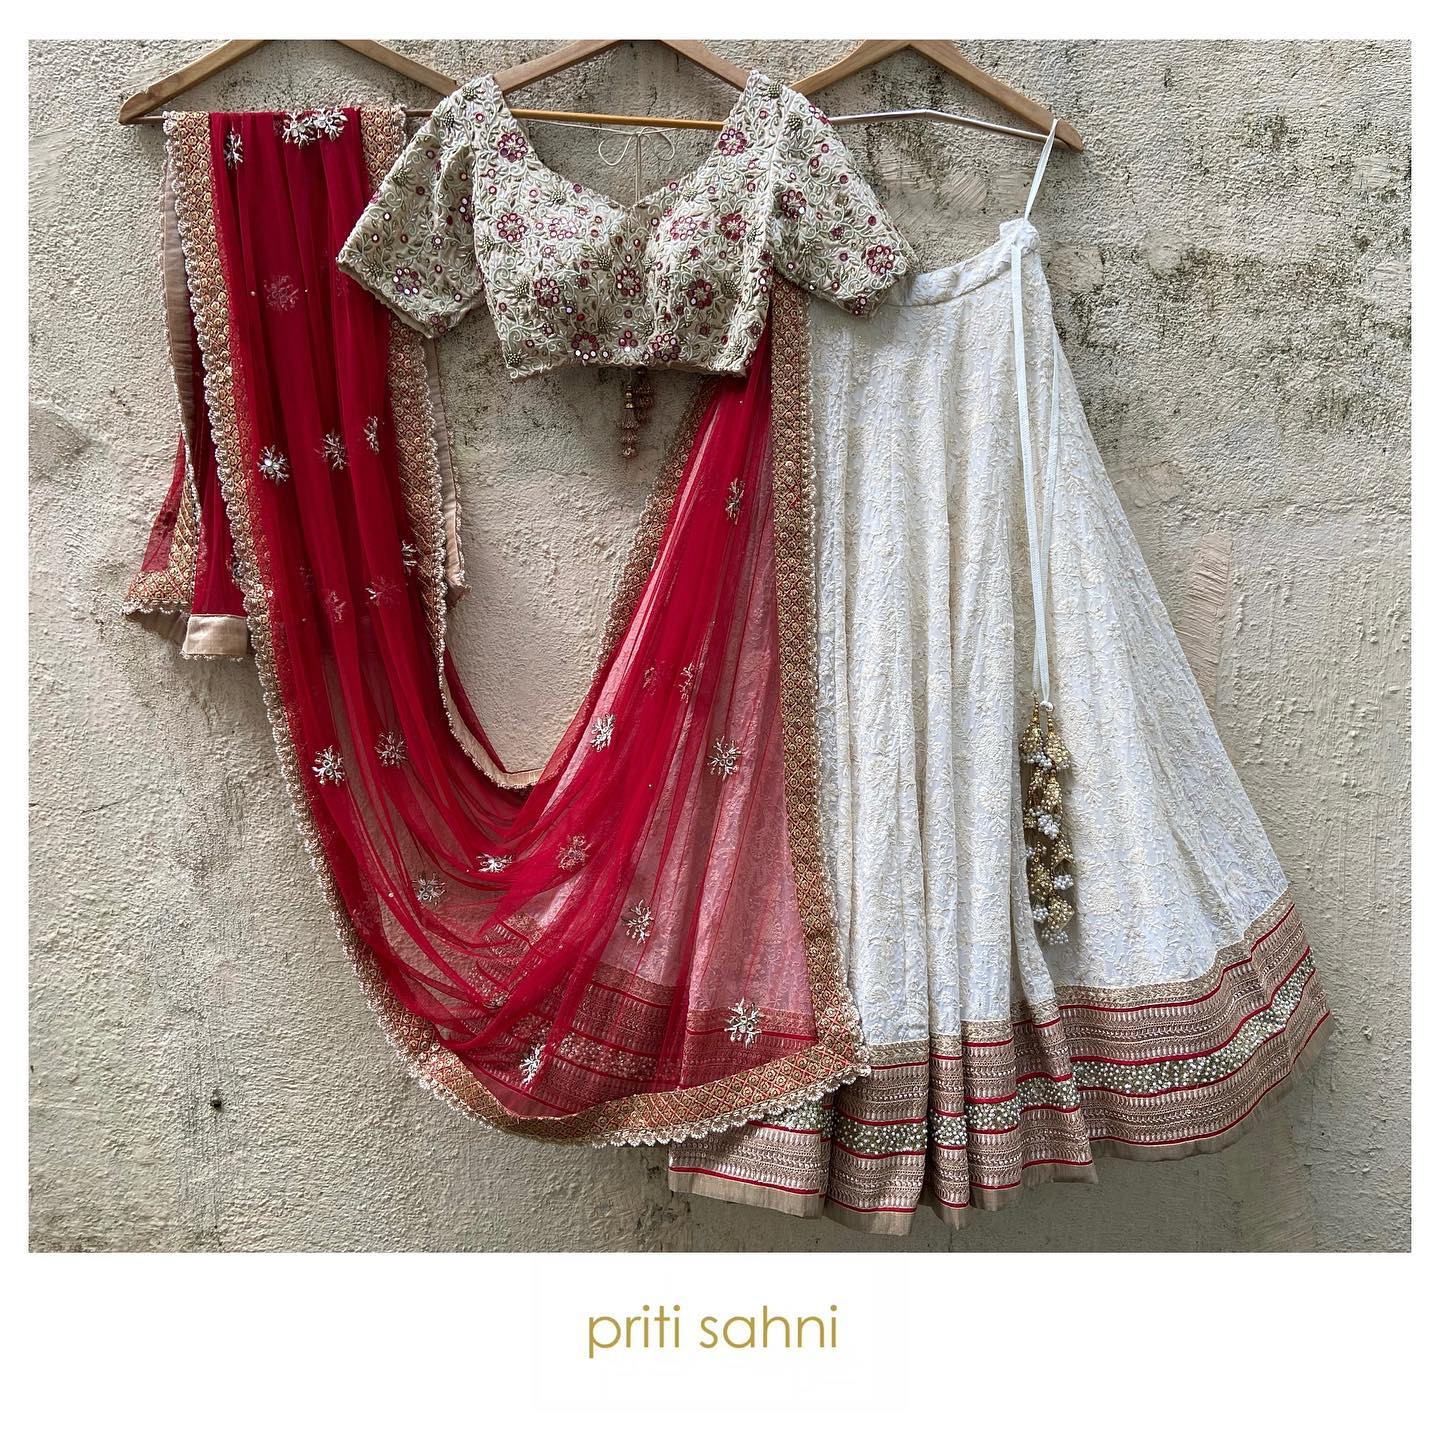 Ivory Edit.  Ivory thread work Lehenga with intricate gots and sequin work border in red accent; delicately hand embroidered raw silk blouse with resham beads zardozi and mirrors paired with butti work dupatta in scalloped edging  To get your dream outfit designed DM or Whatsapp on +91-9022617481. 2021-09-25